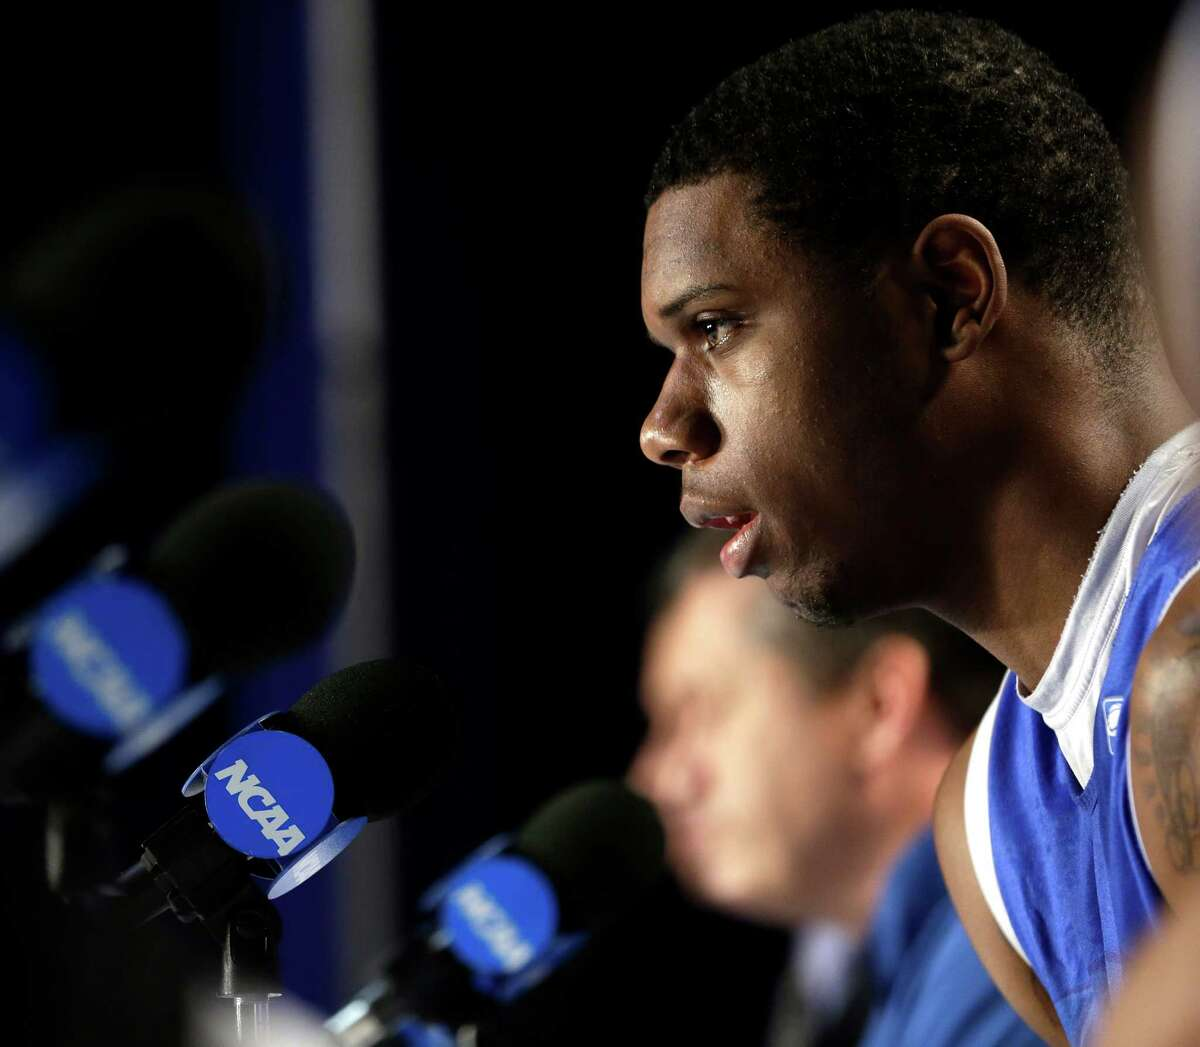 Kentucky's Terrence Jones during a news conference Saturday, March 24, 2012, in Atlanta. (AP Photo/David J. Phillip)